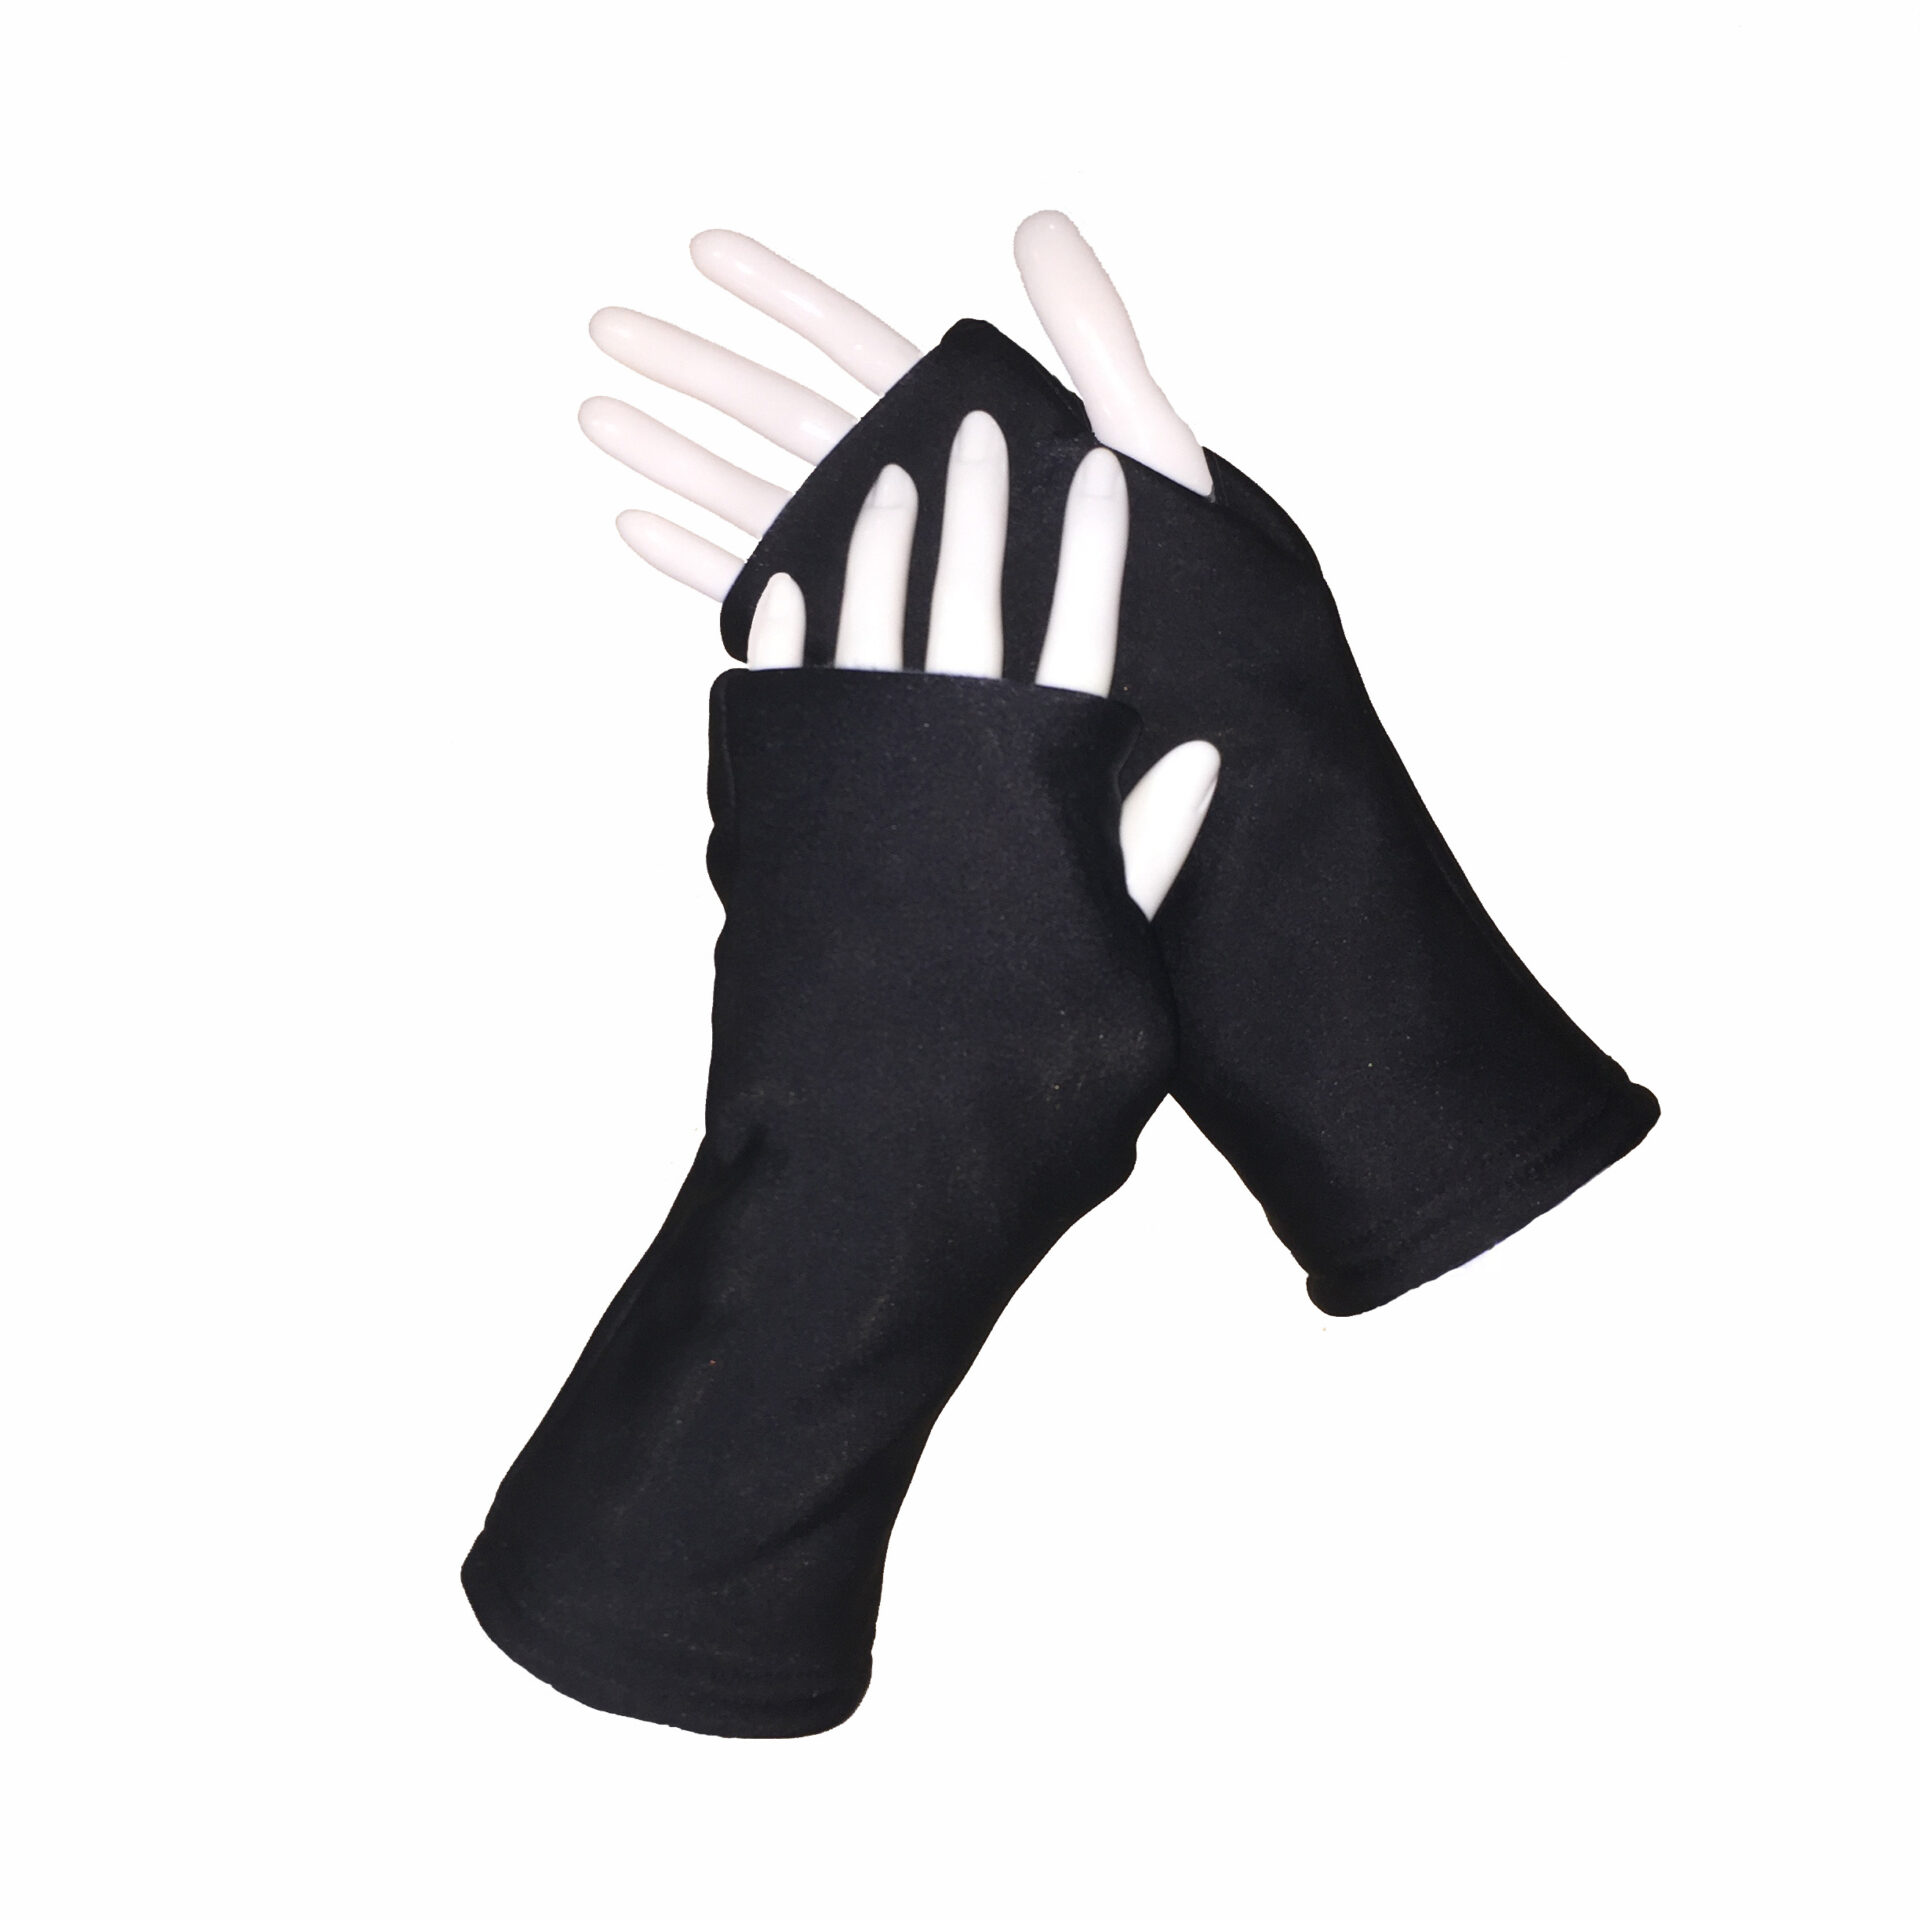 Turtle Gloves REVERSIBLE Fingerless WR 360 black primary shell